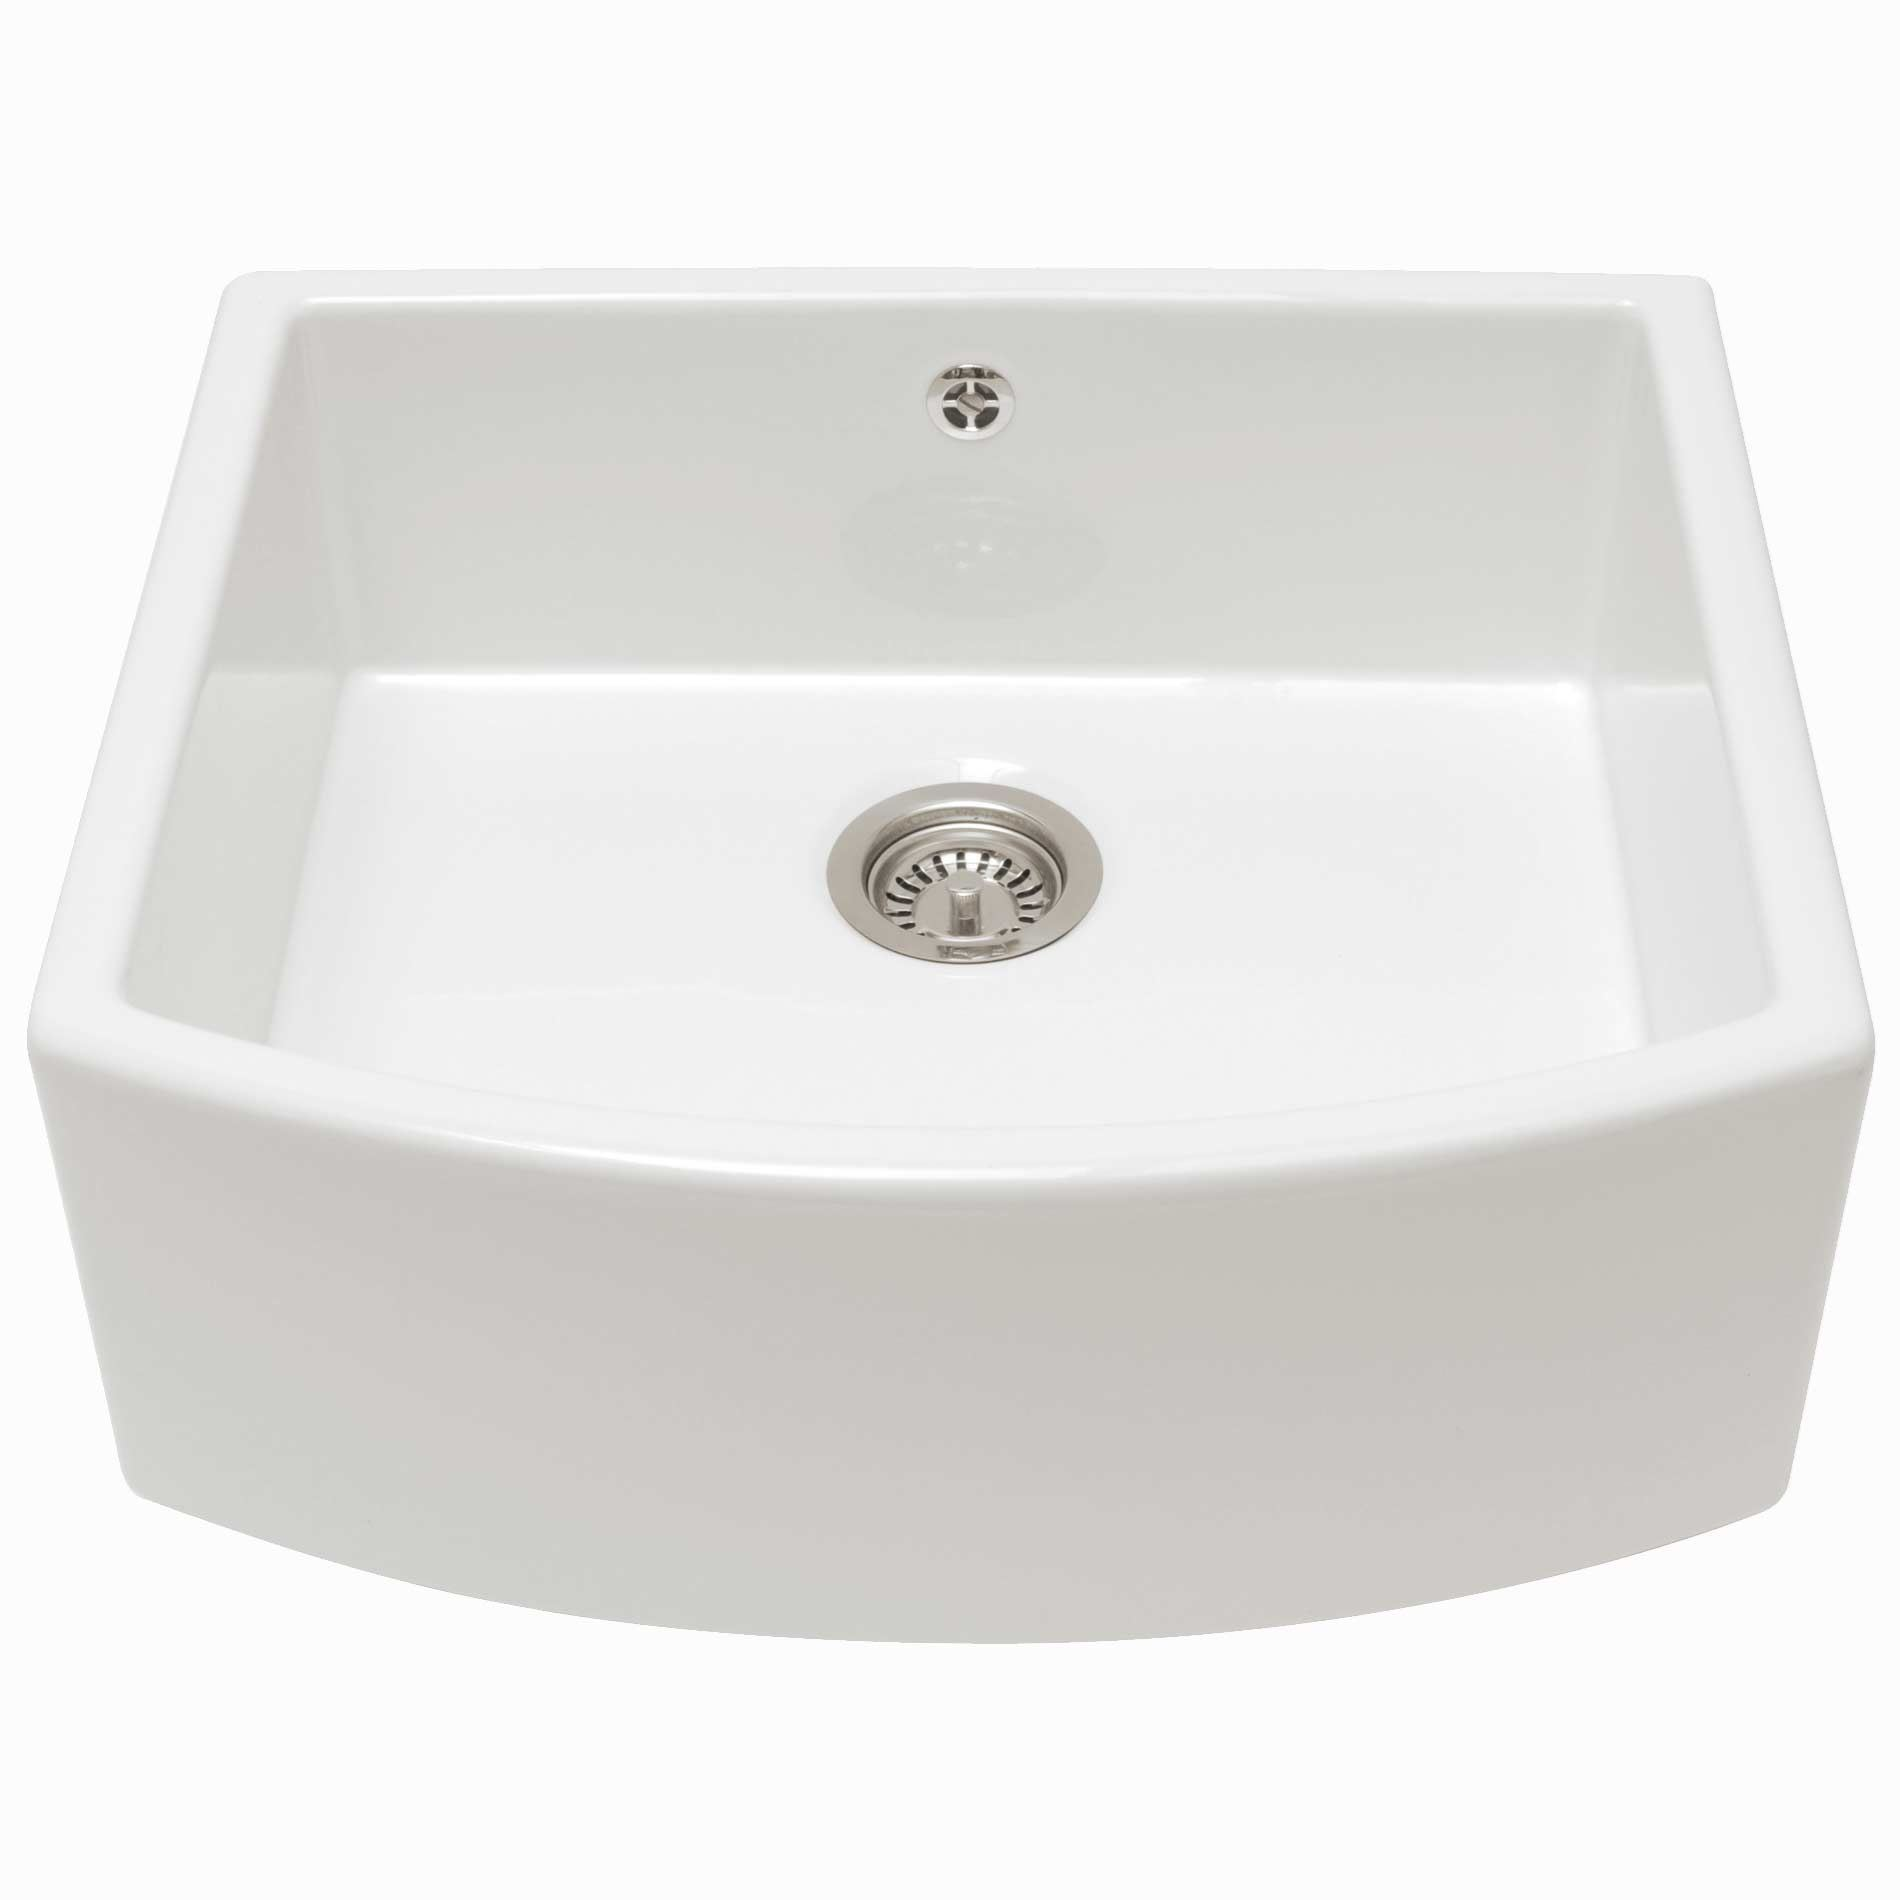 Ceramic Kitchen Sink Caple Pemberley Ceramic Single Bowl Sink Kitchen Sinks